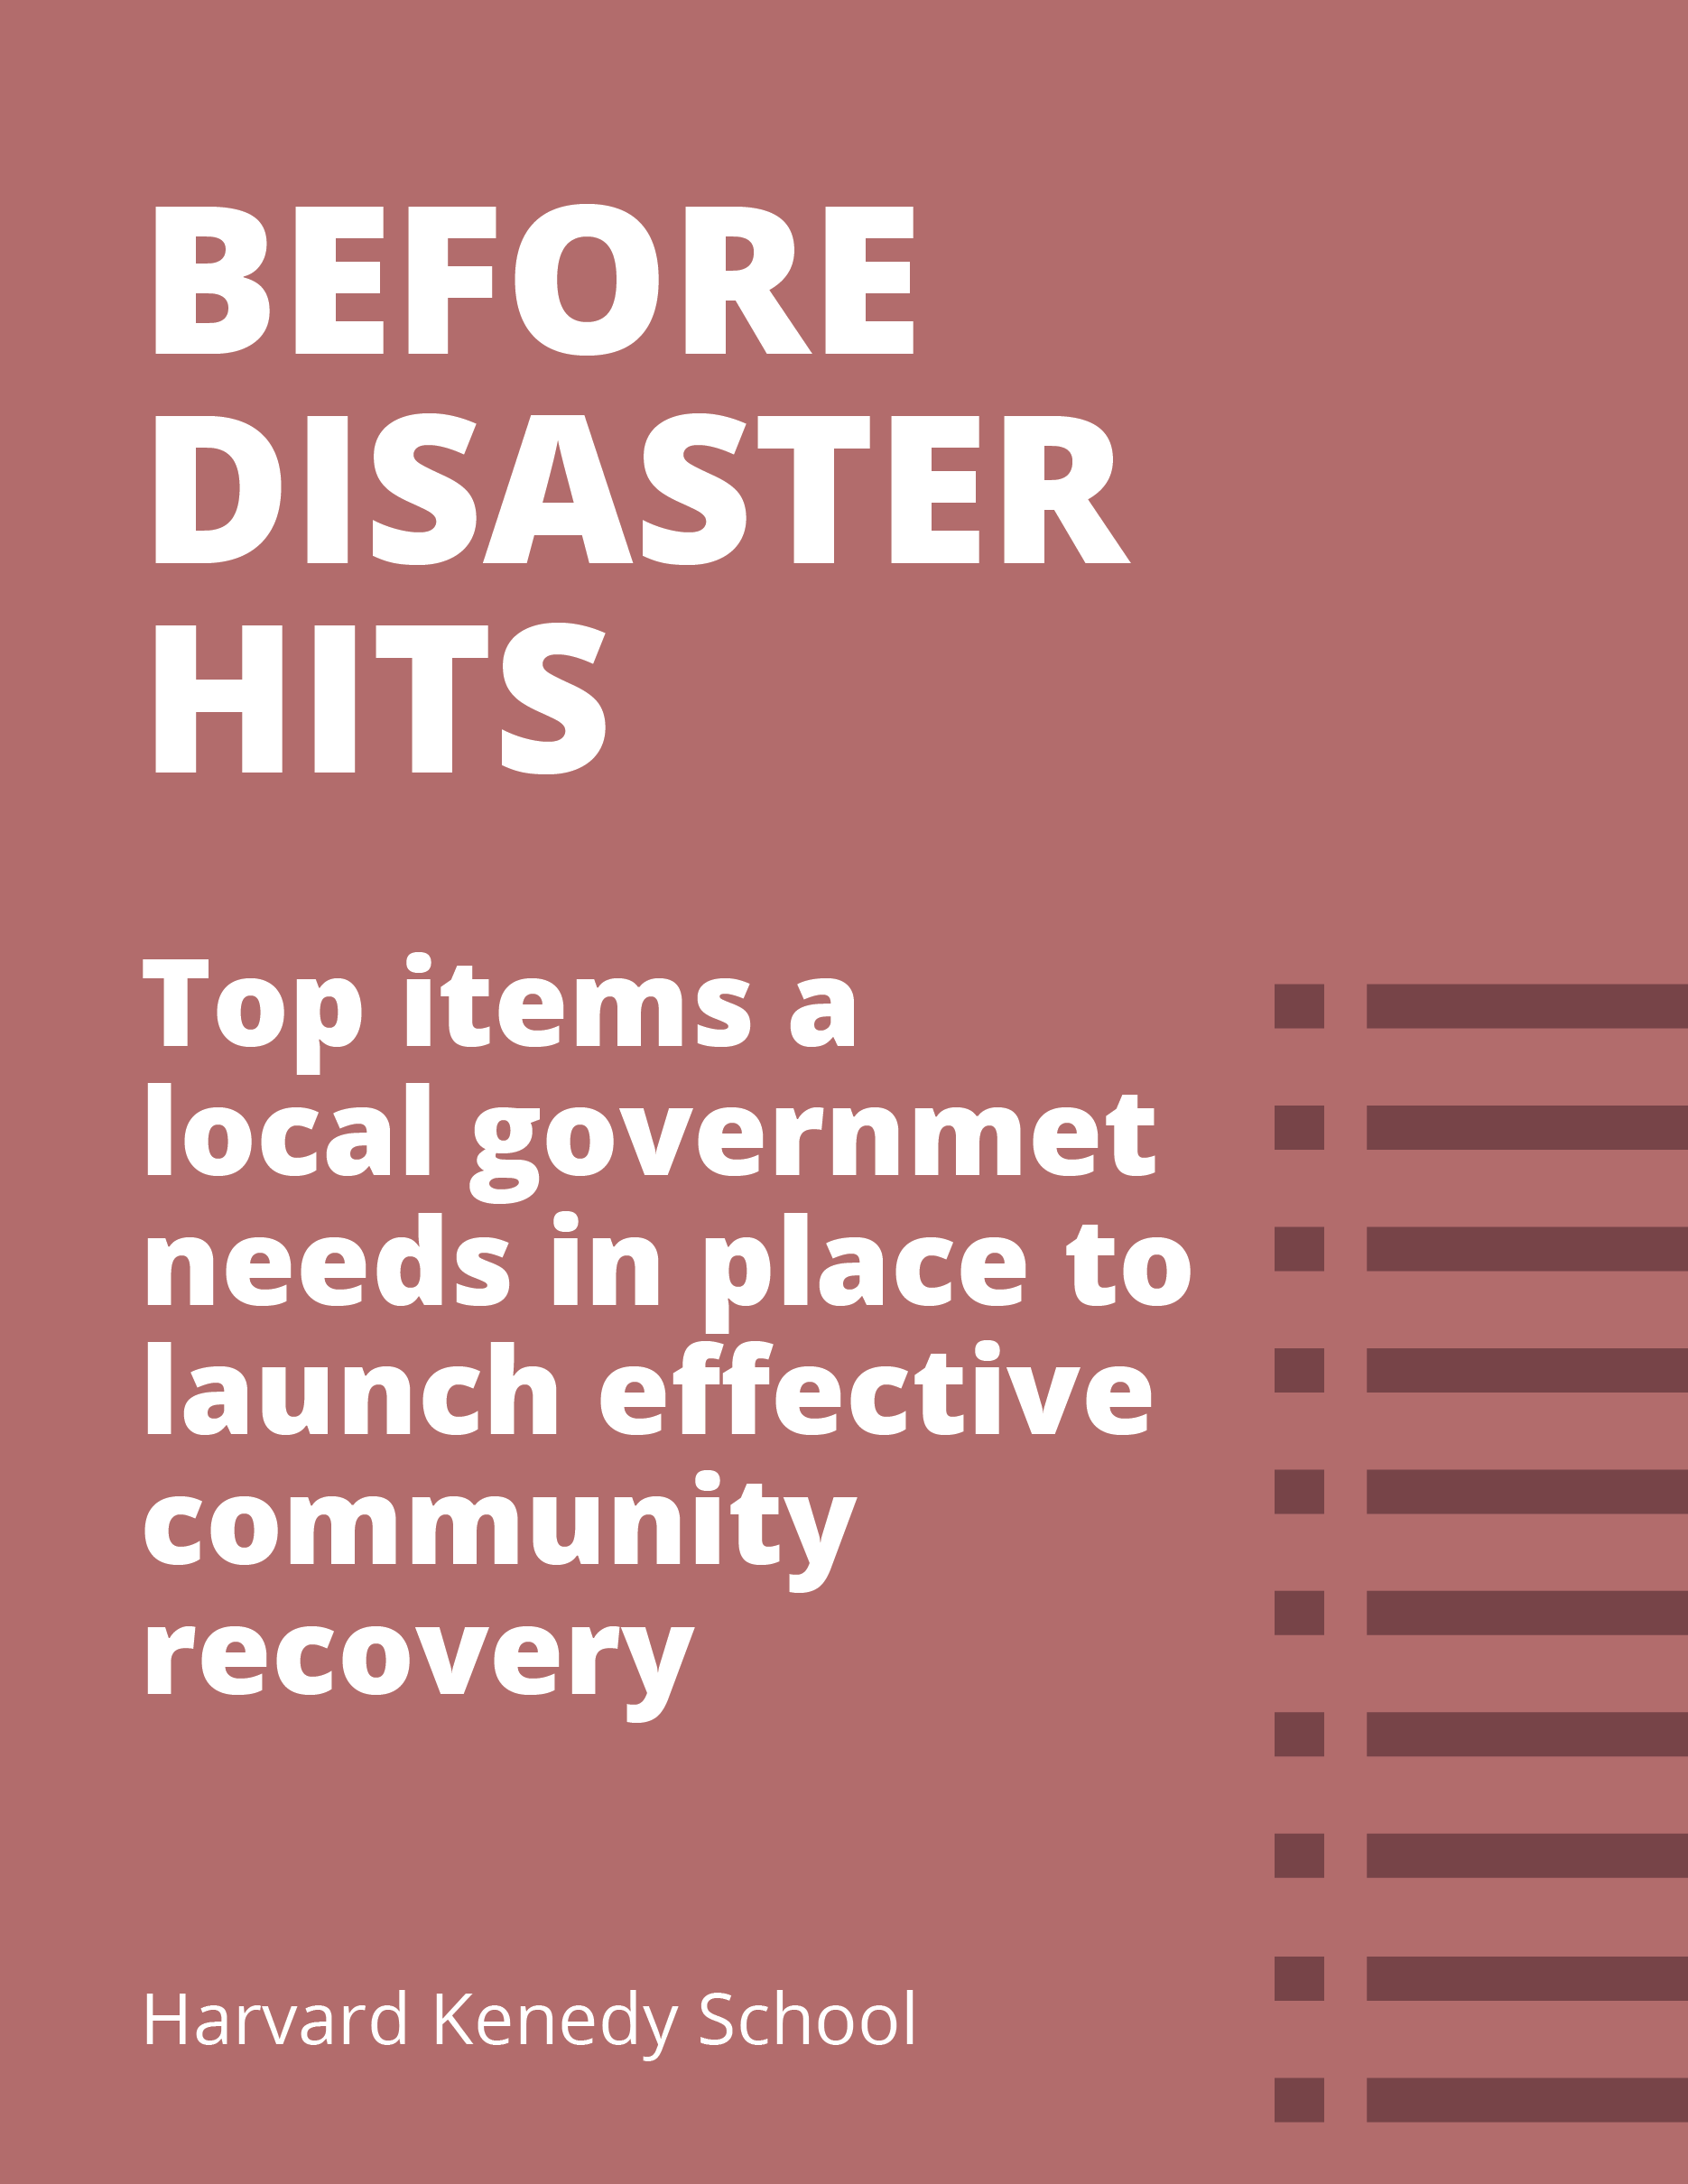 Pre-Disaster Recovery Planning Toolkit for Local Governments